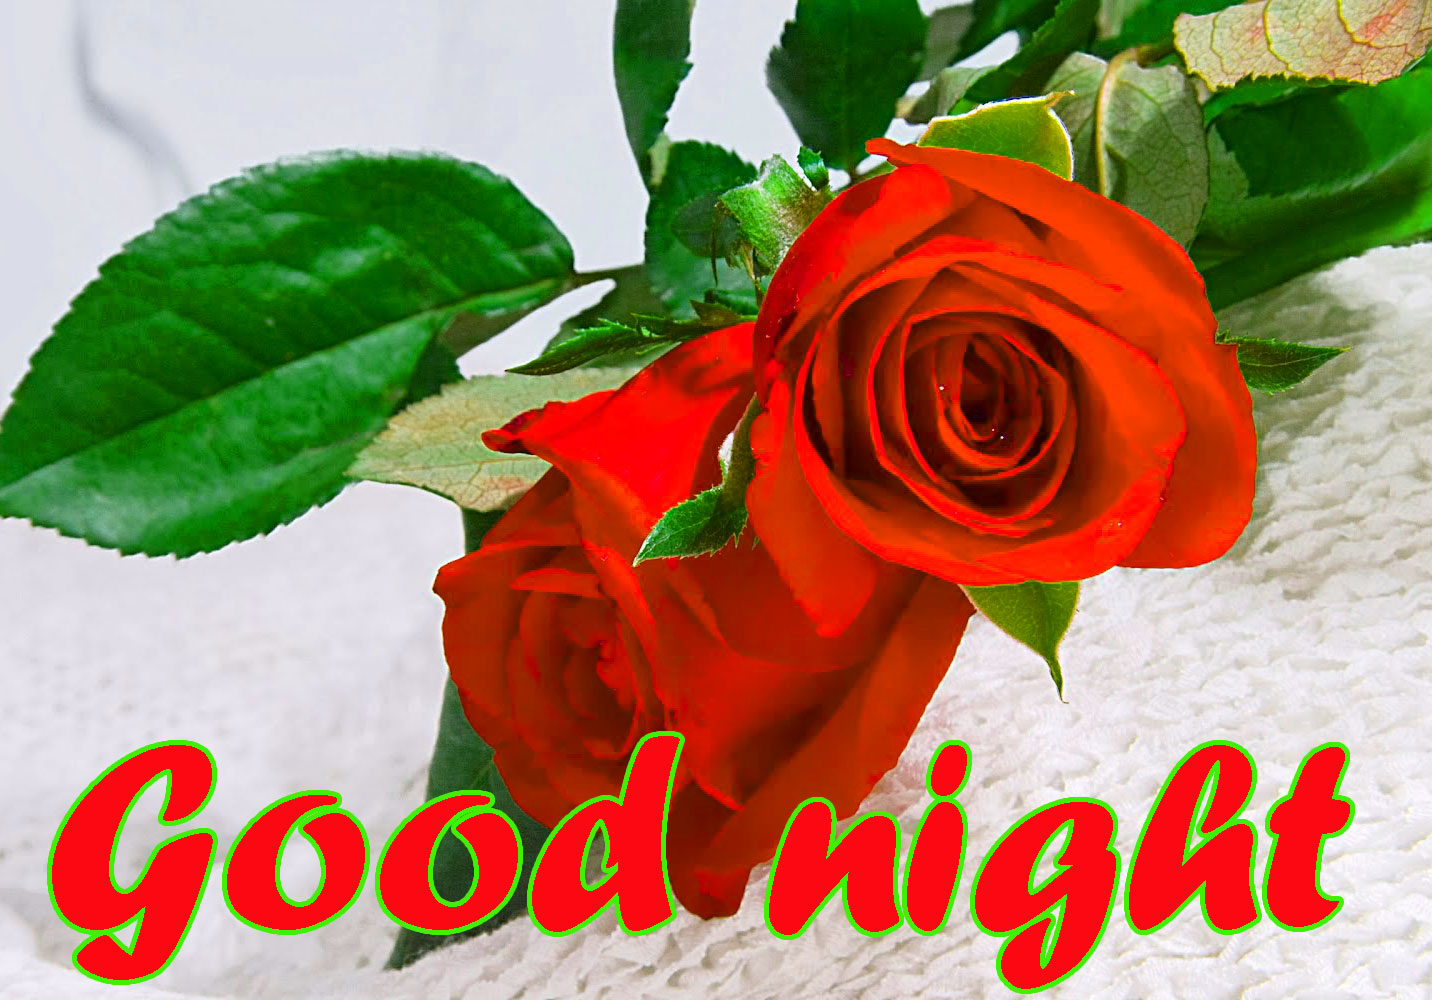 RED ROSE GOOD NIGHT WISHES IMAGES WALLPAPER PICS FREE